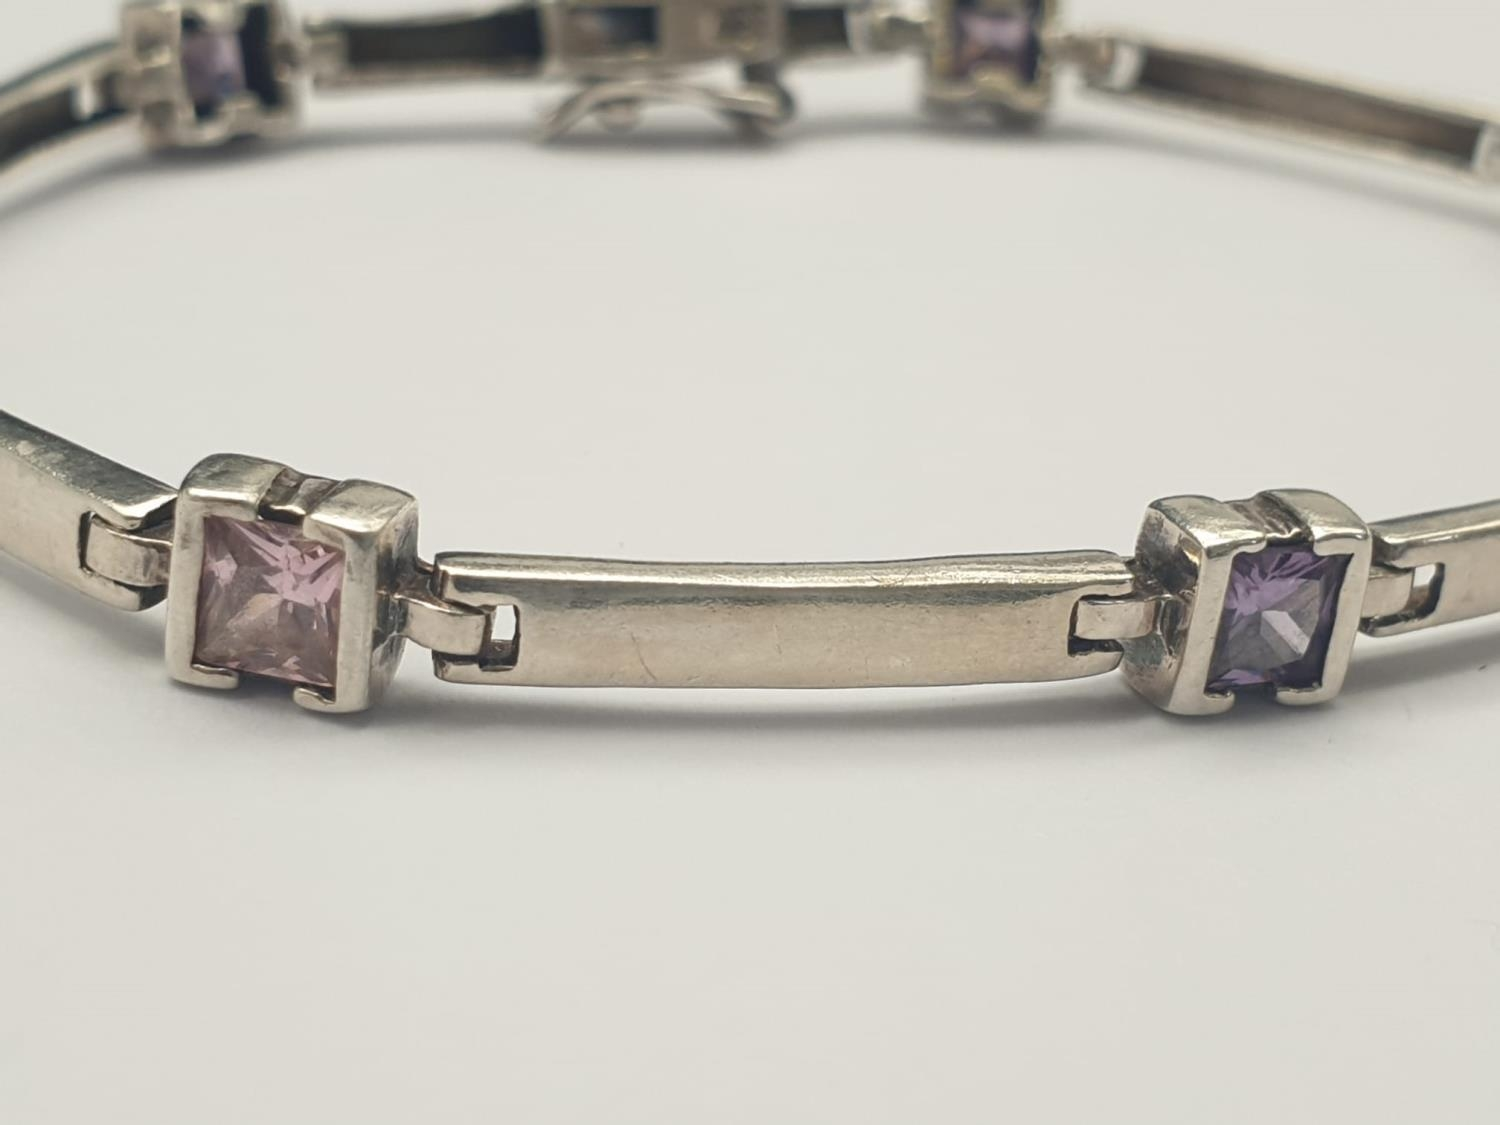 A SILVER ARTICULATED BRACELET WITH PINK, WHITE AND PURPLE STONES. 9.4gms 18cms - Image 2 of 4